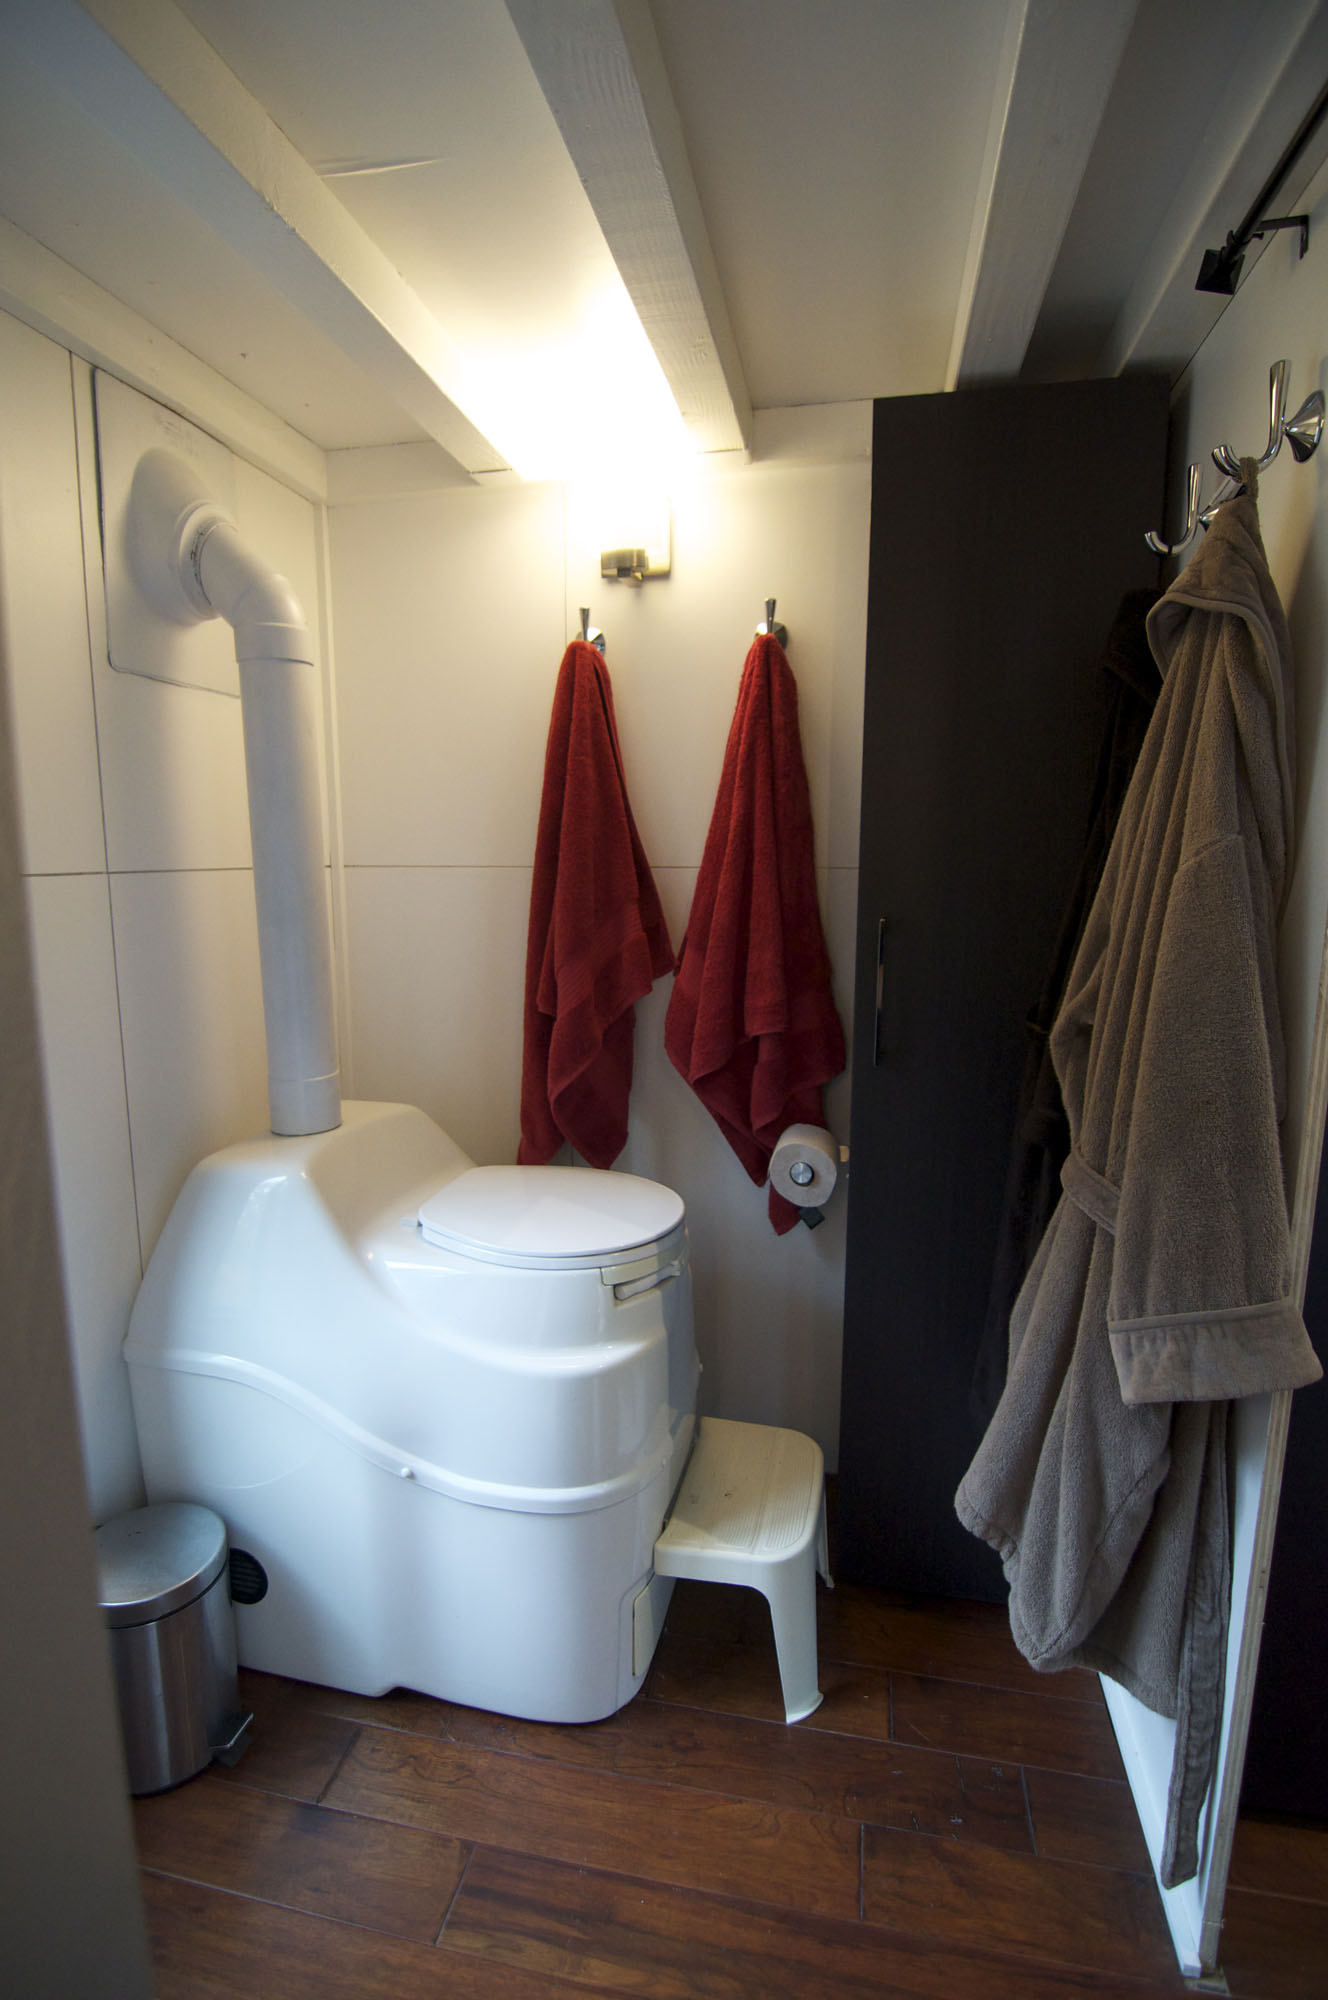 Bathroom, Toilet, Tiny House on Wheels